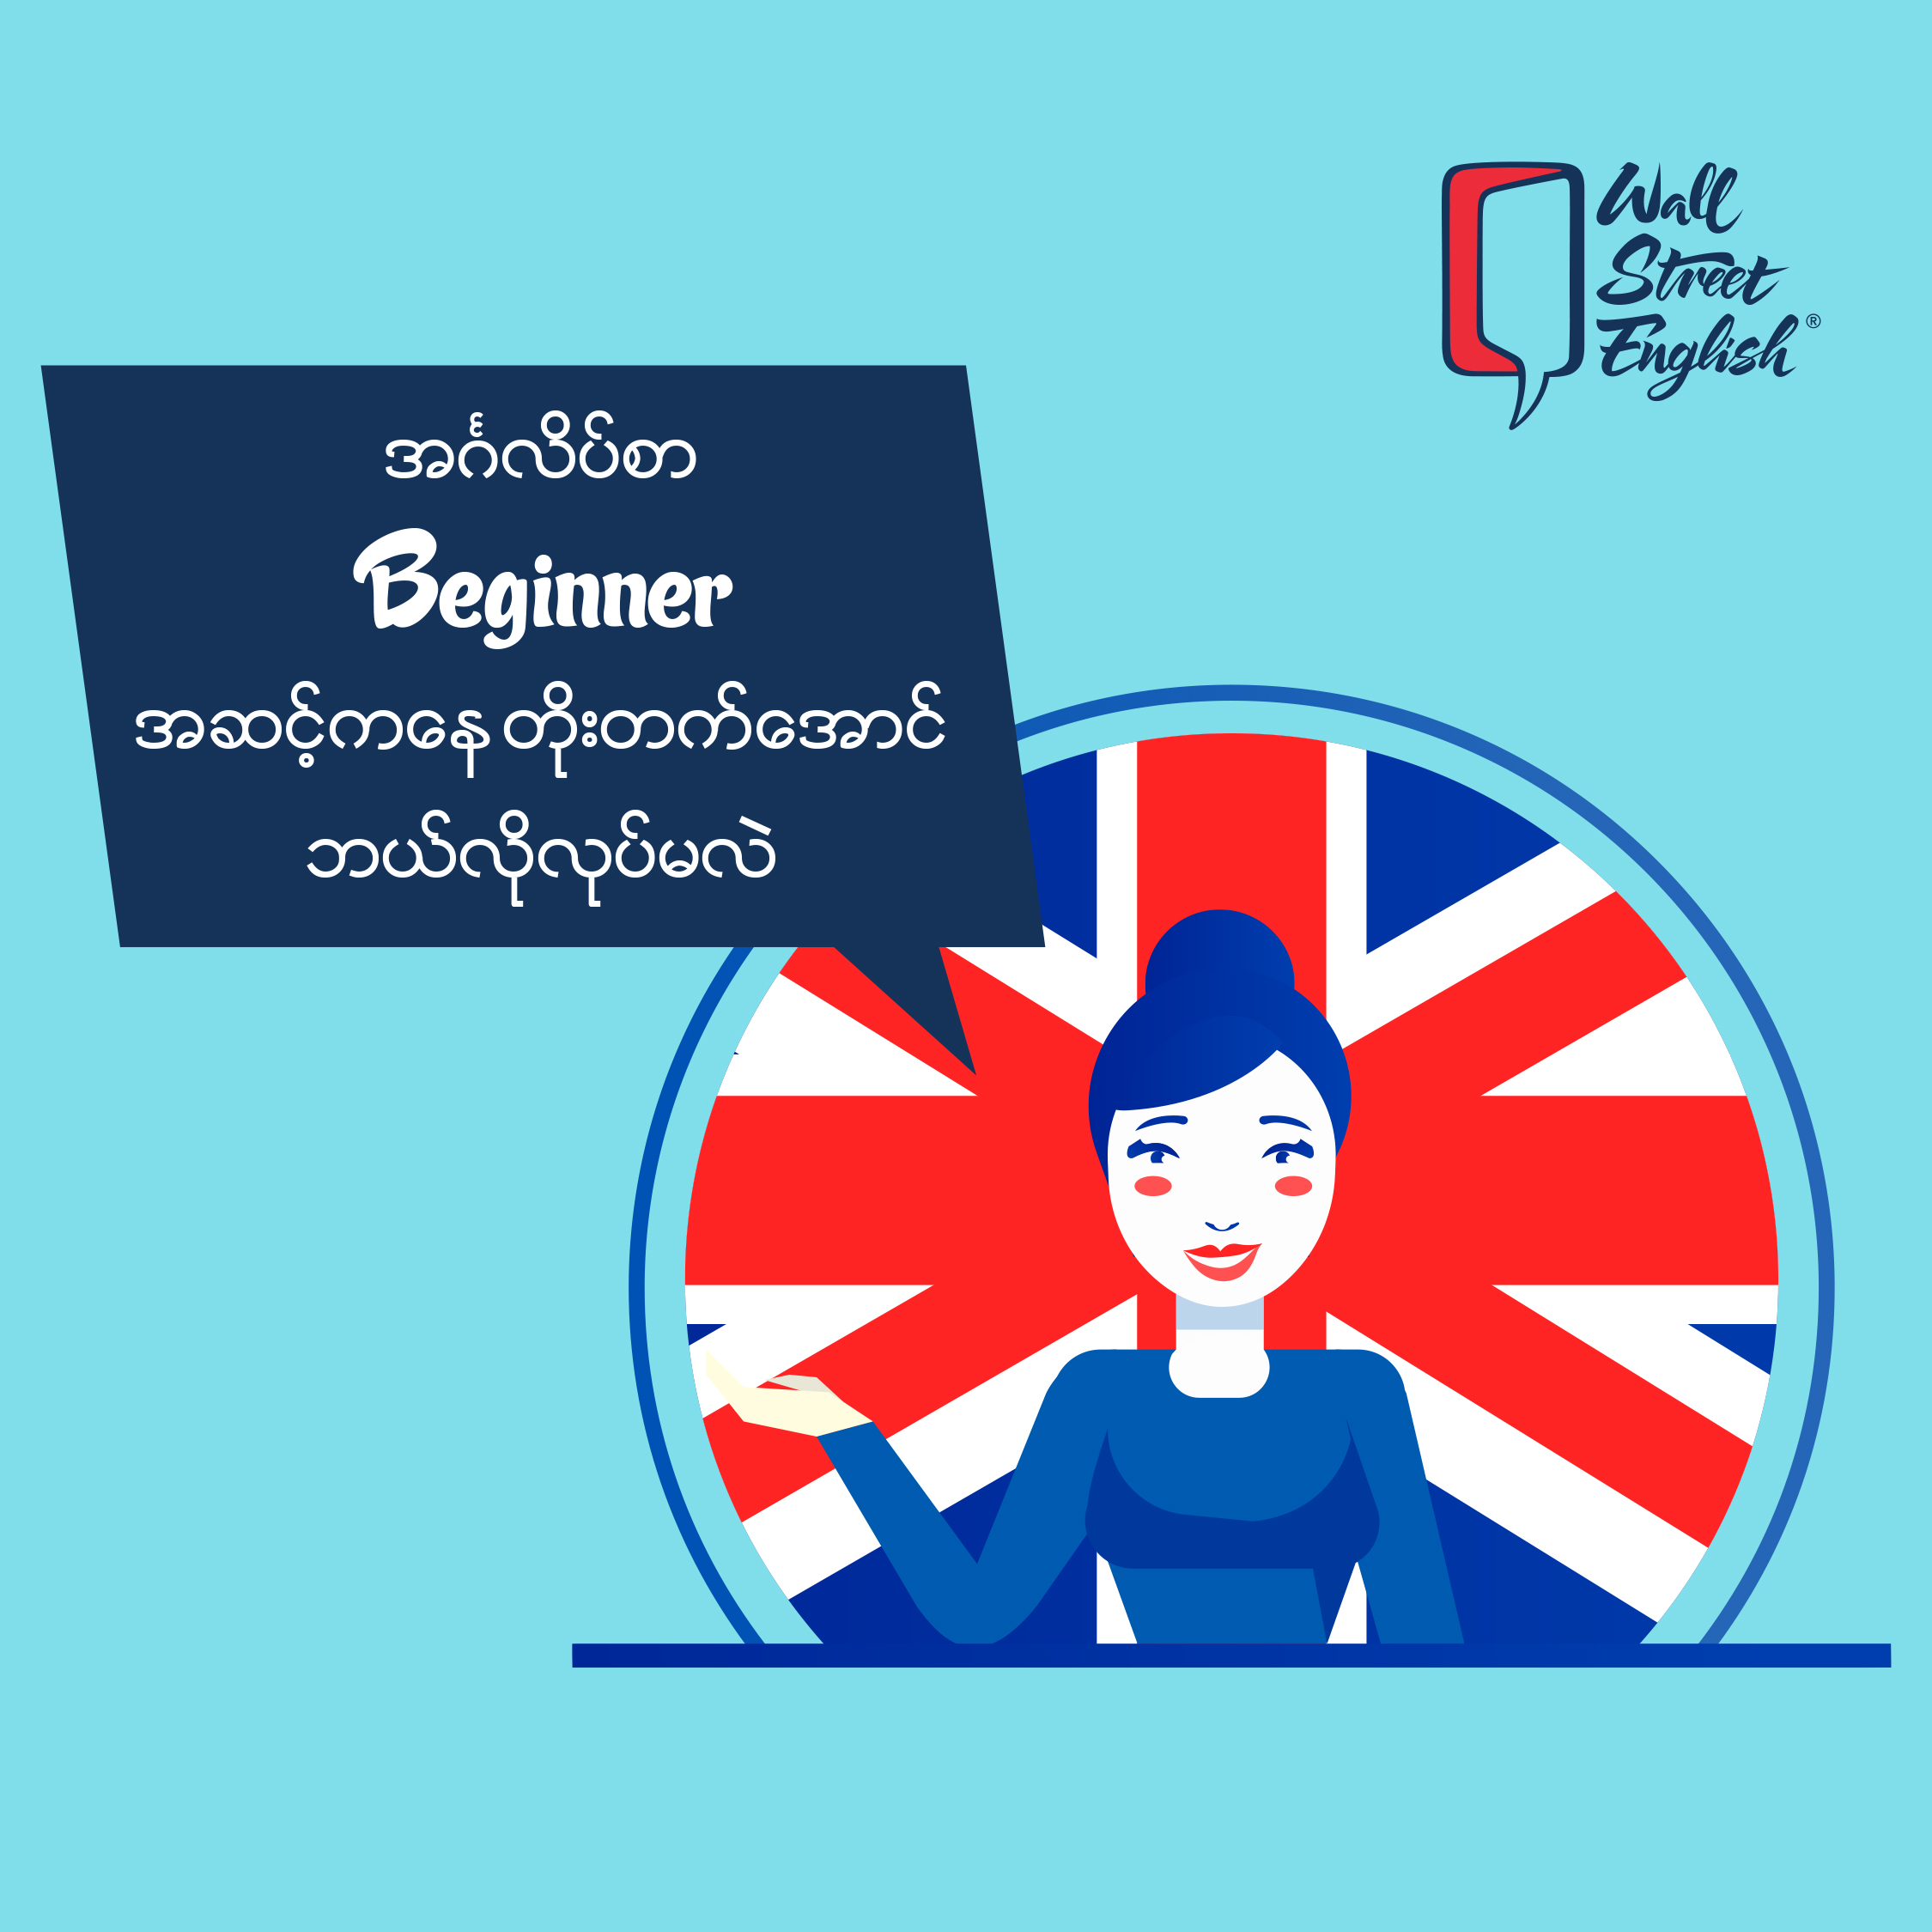 Improvement tips from beginner to Intermediate in English